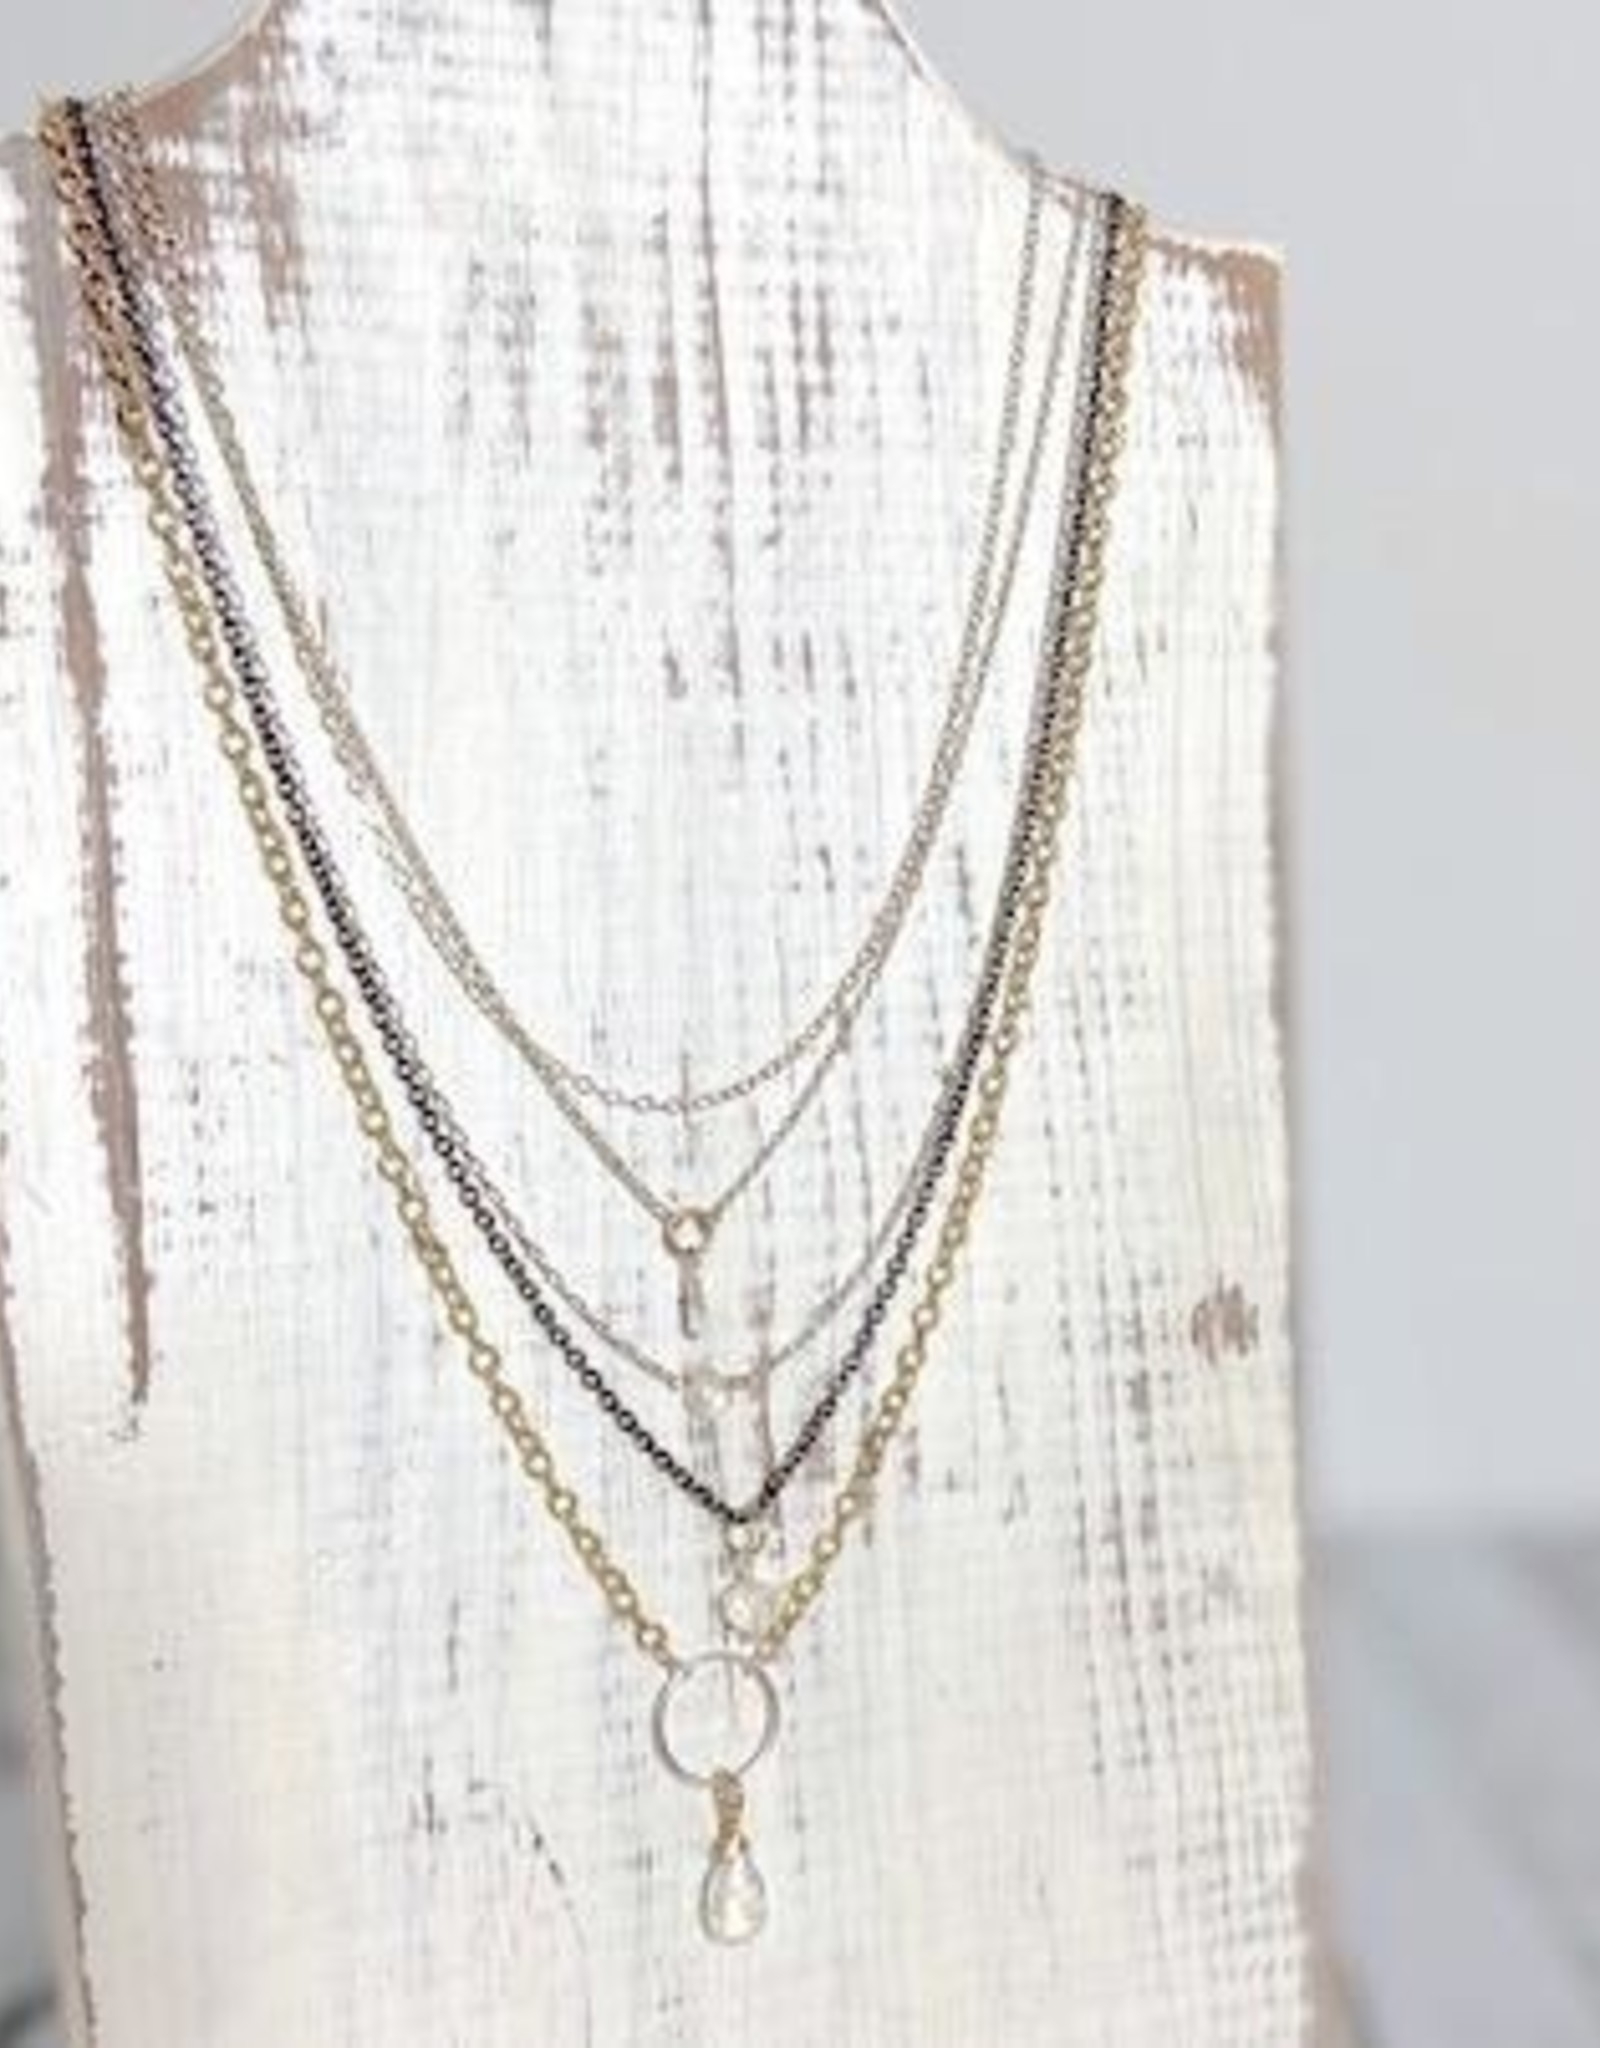 EVANKNOX Handmade Multi-strand Necklace with shiny sterling silver, oxidized sterling silver and 14k goldfill chains with rainbow moonstones.